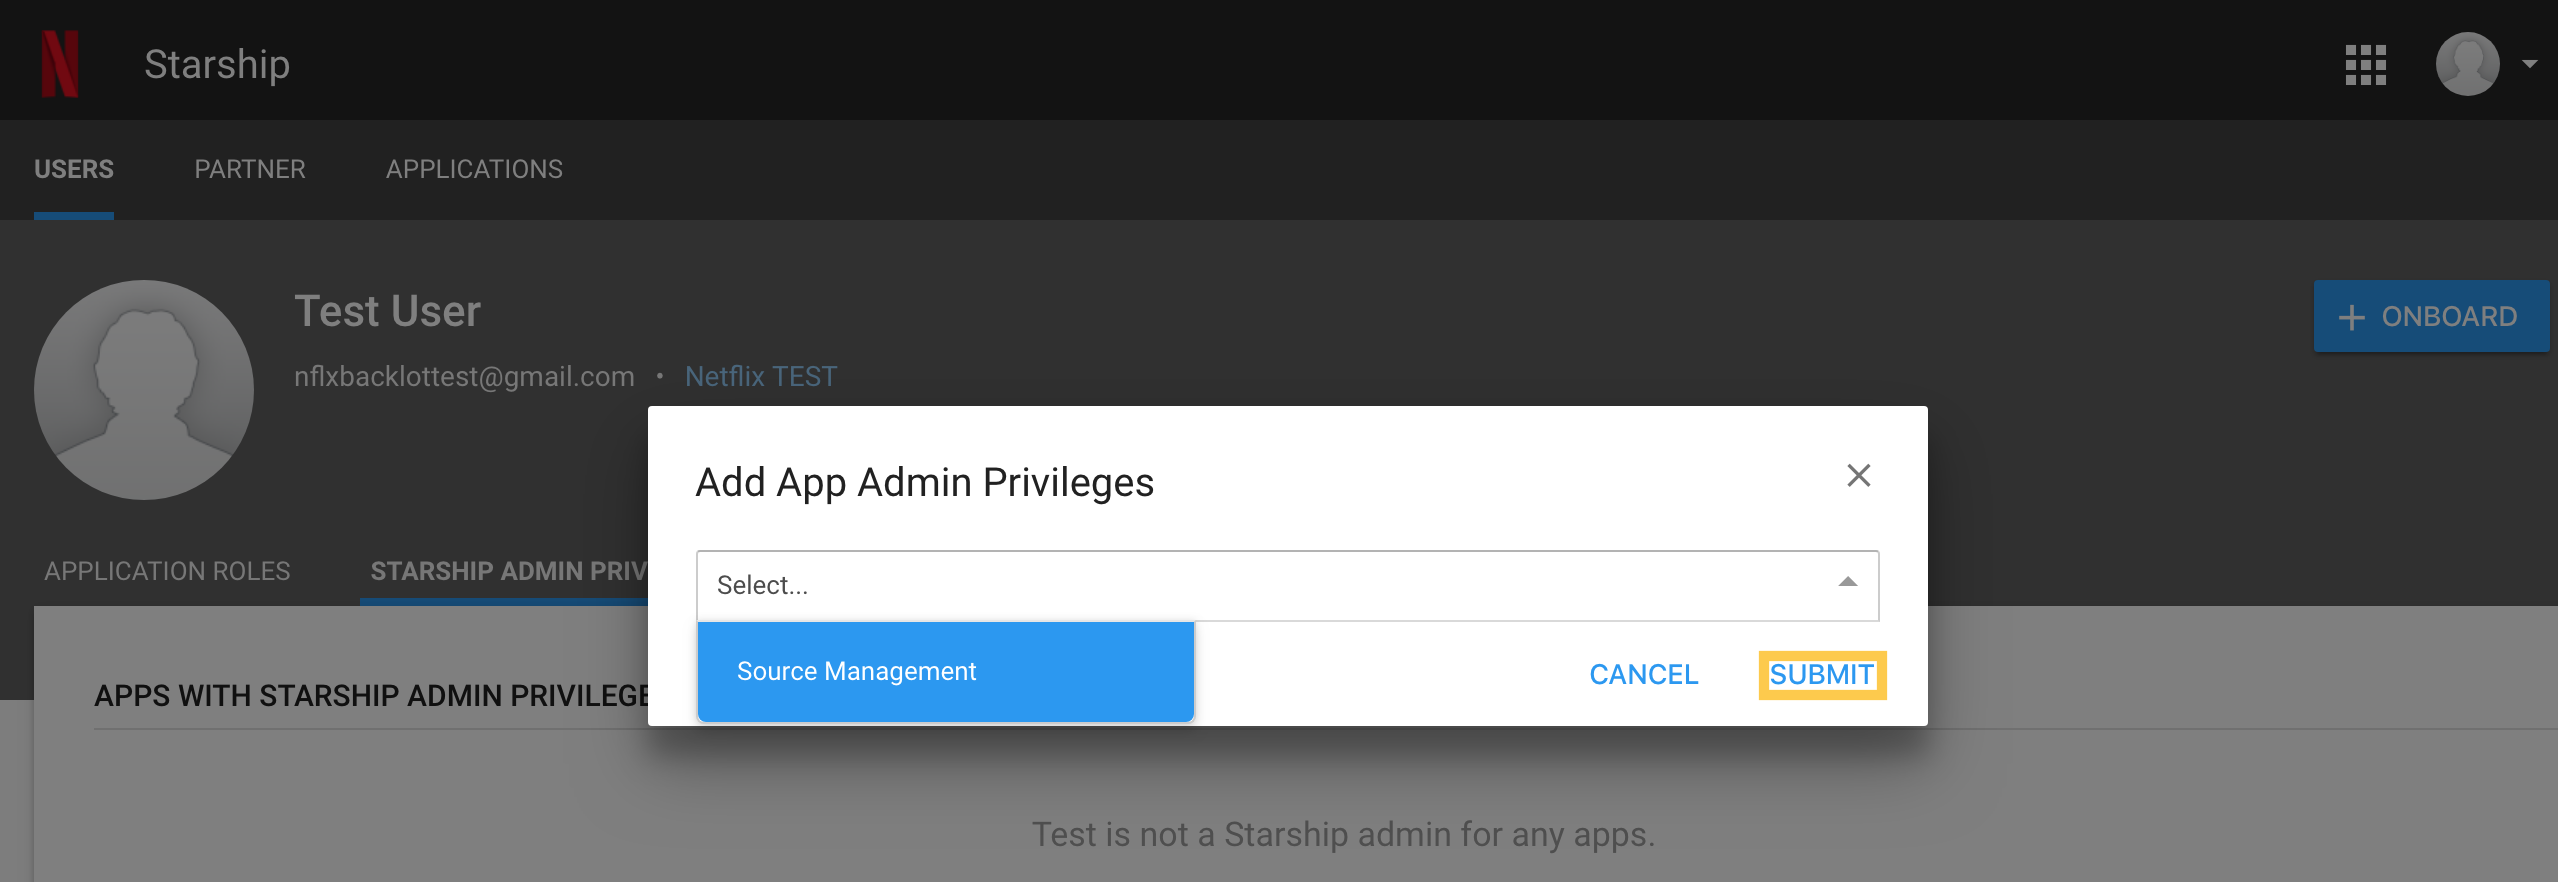 10_Starship_Add_Admin_Privileges.png